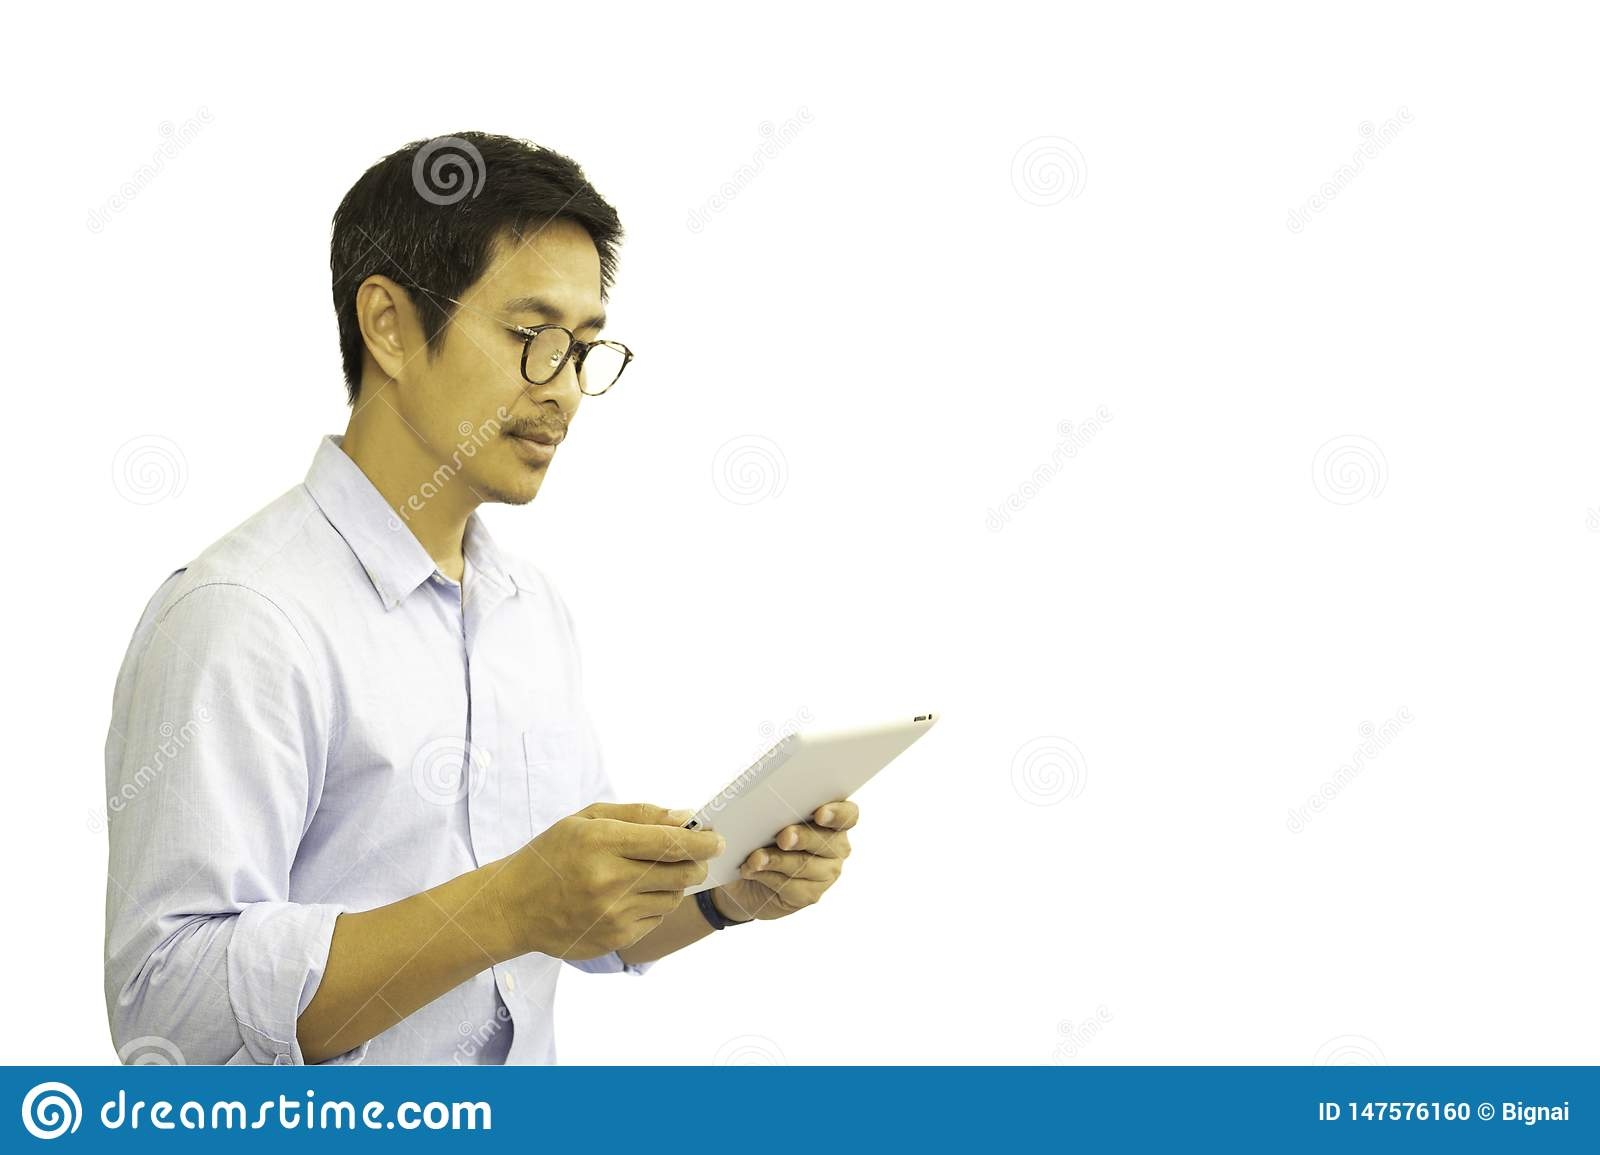 Asian man with eyeglasses looking at tablet isolated in clipping path.